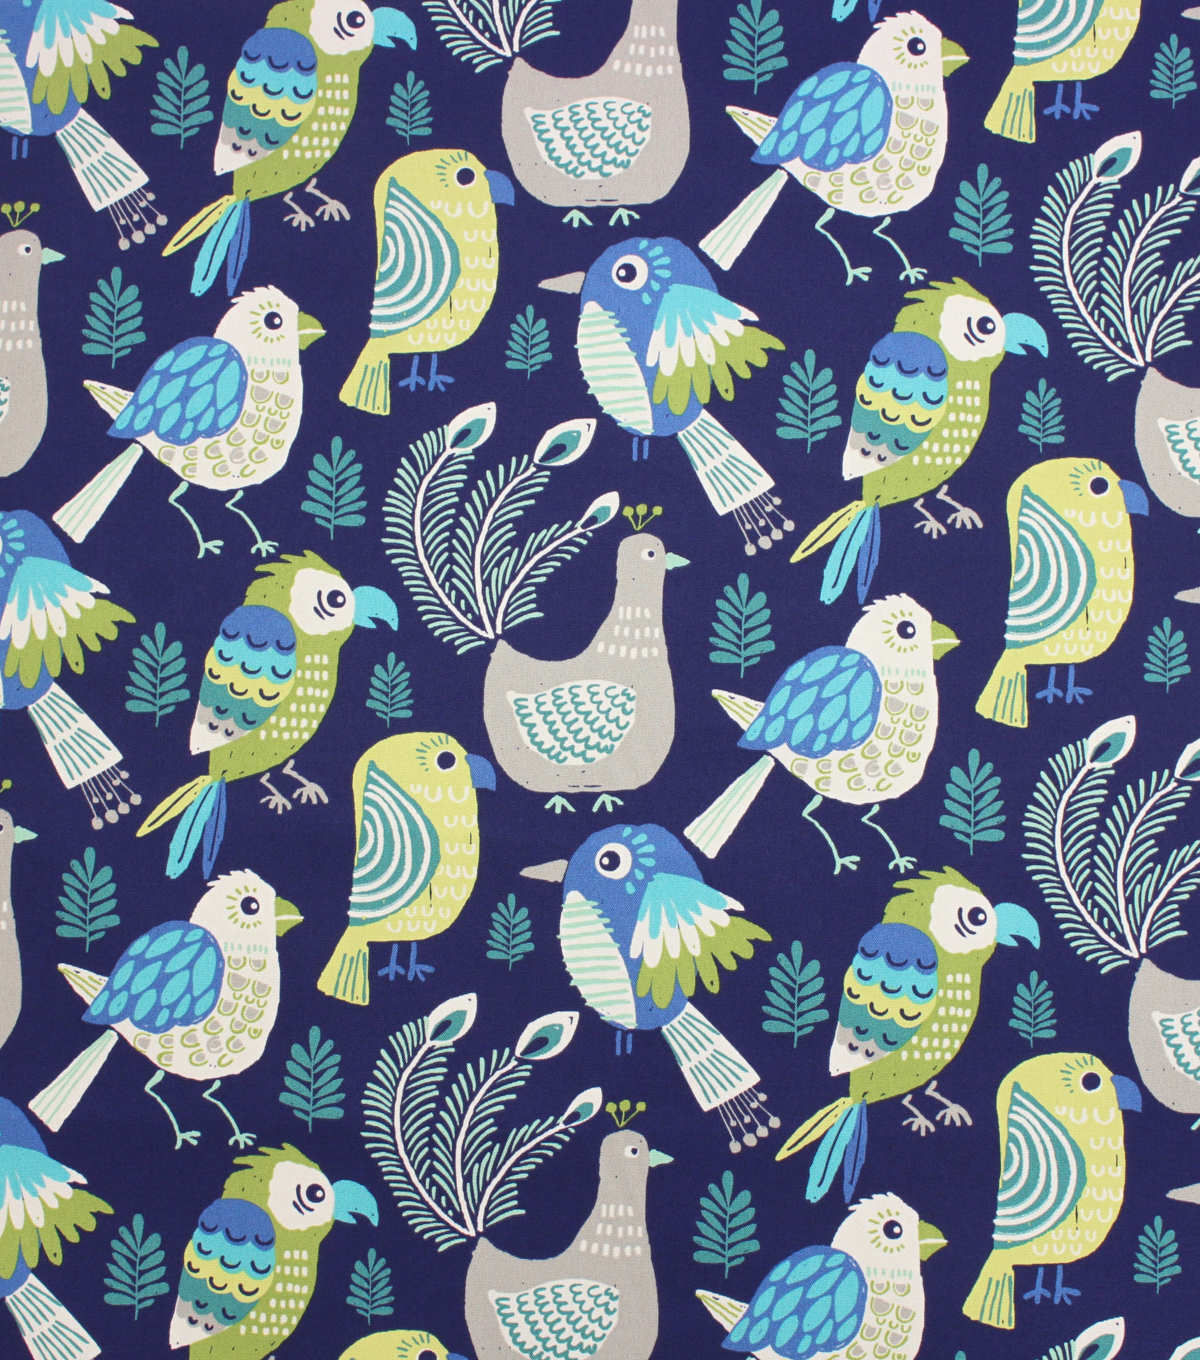 Solarium Outdoor Print Fabric 54''-Kitchi Marine